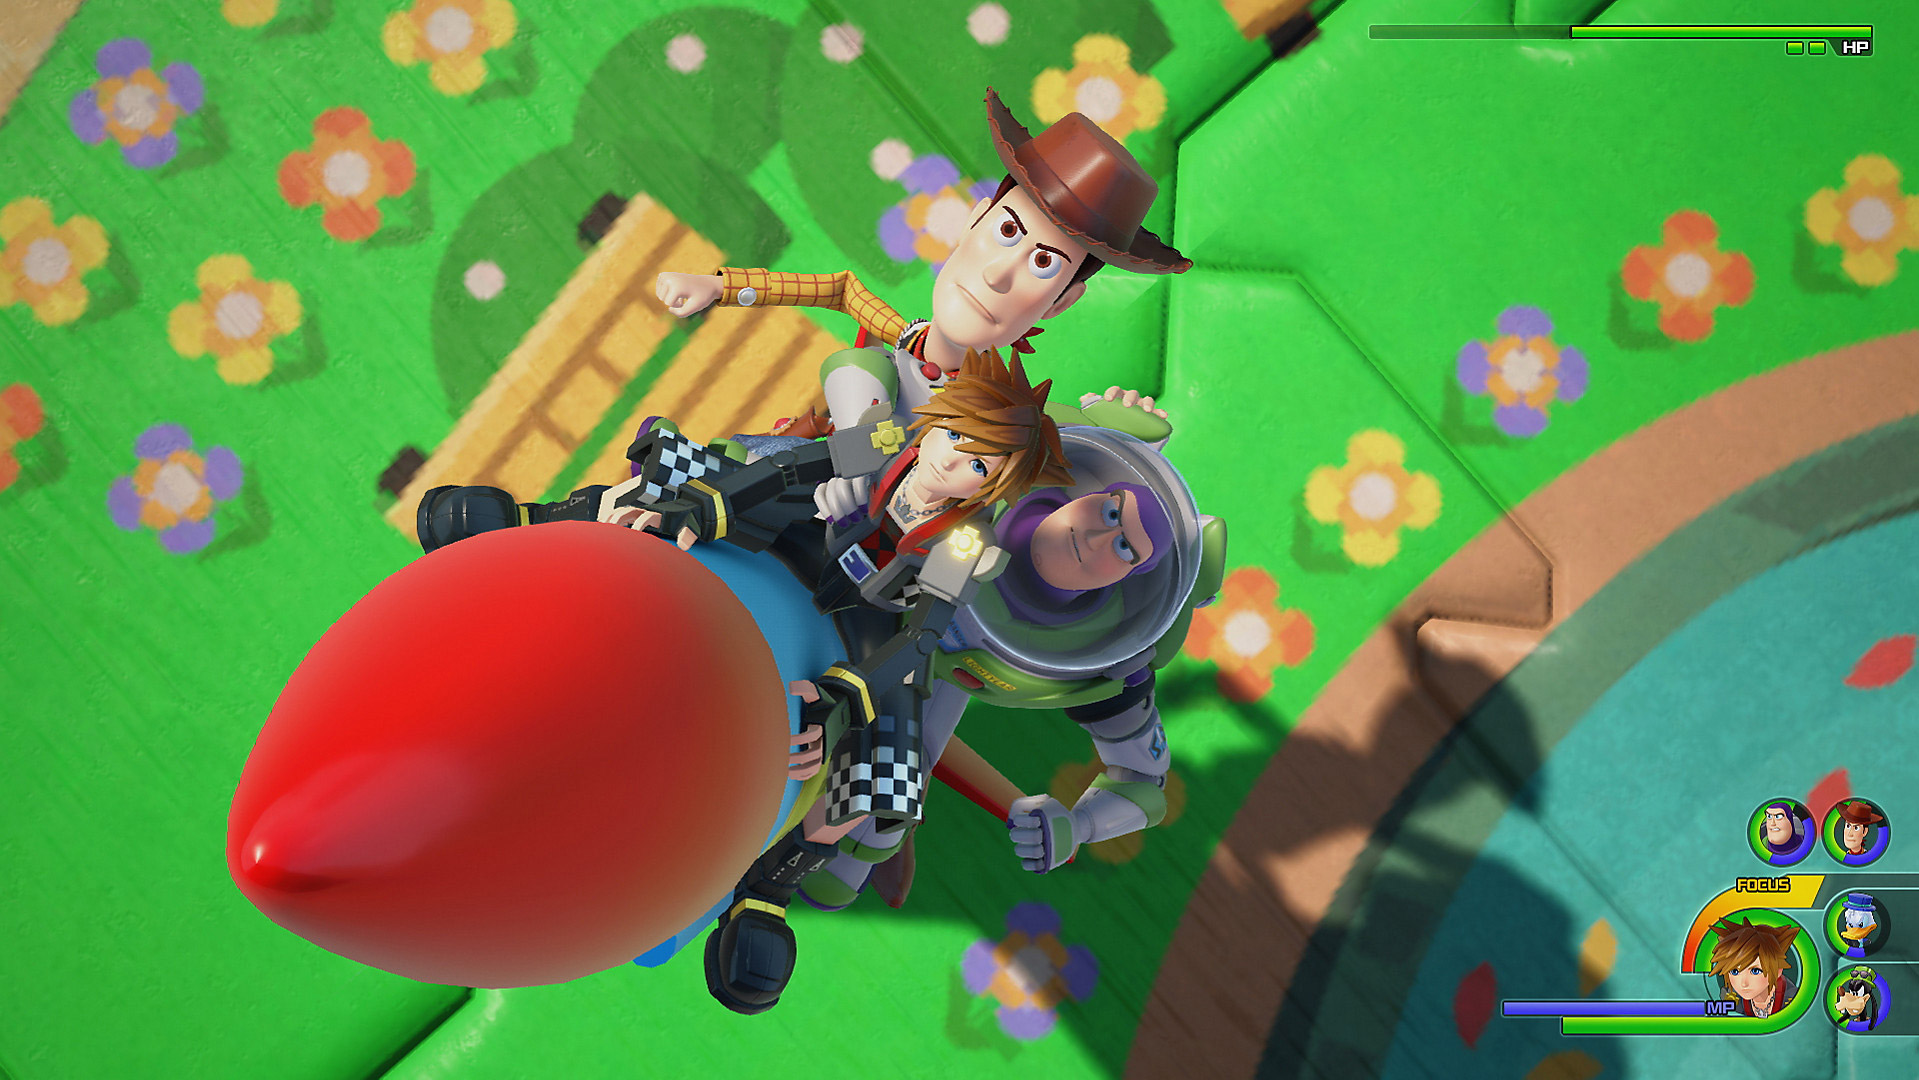 The Kingdom Hearts III demo includes one of the best worlds screenshot